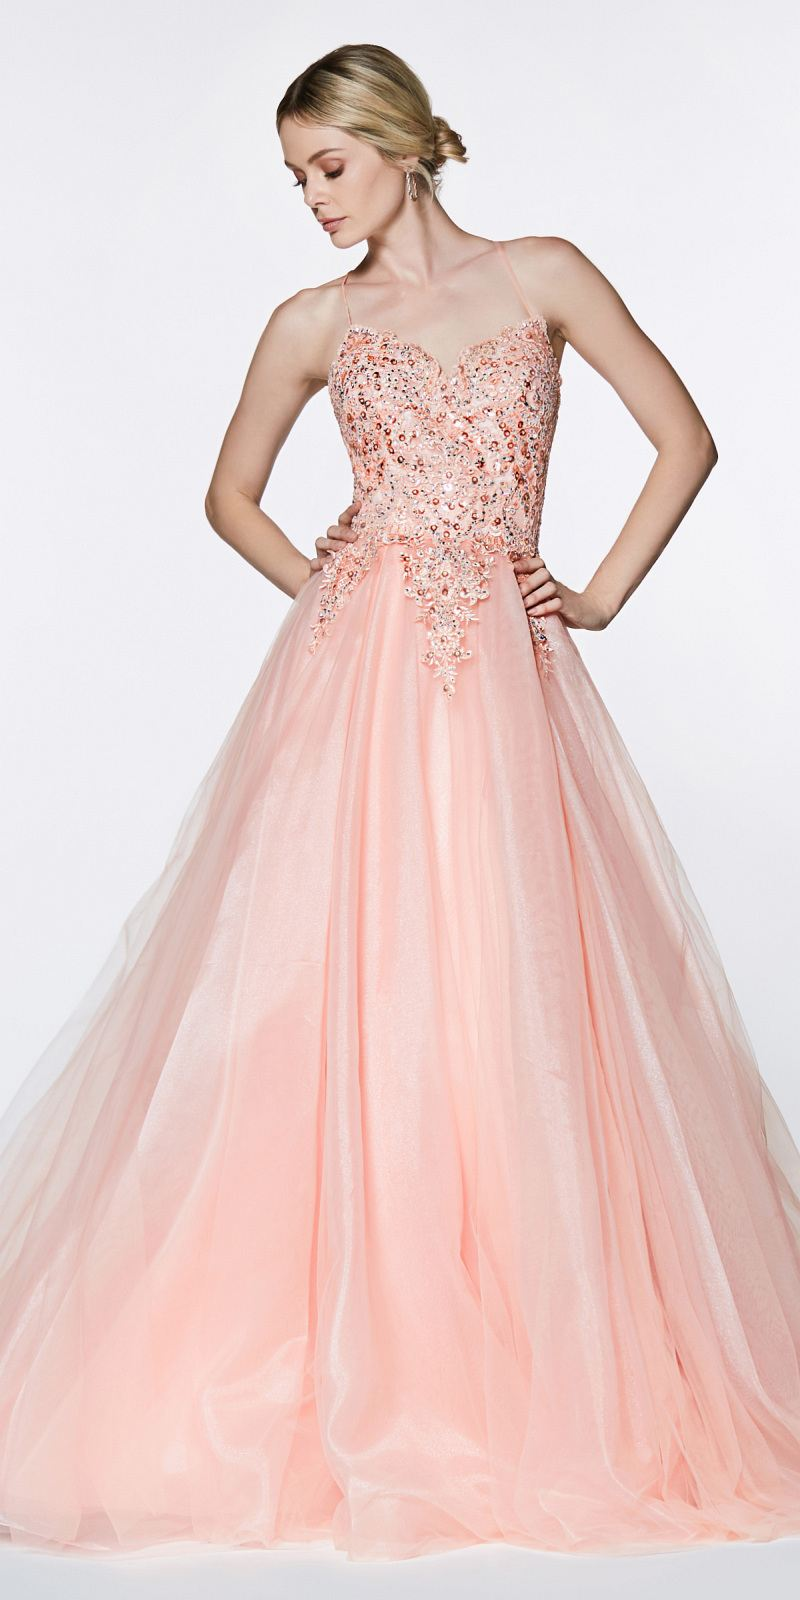 214983d6ee2 Cinderella Divine KV1037 Long A-Line Tulle Prom Gown Blush Lace Beaded  Bodice Criss Cross ...